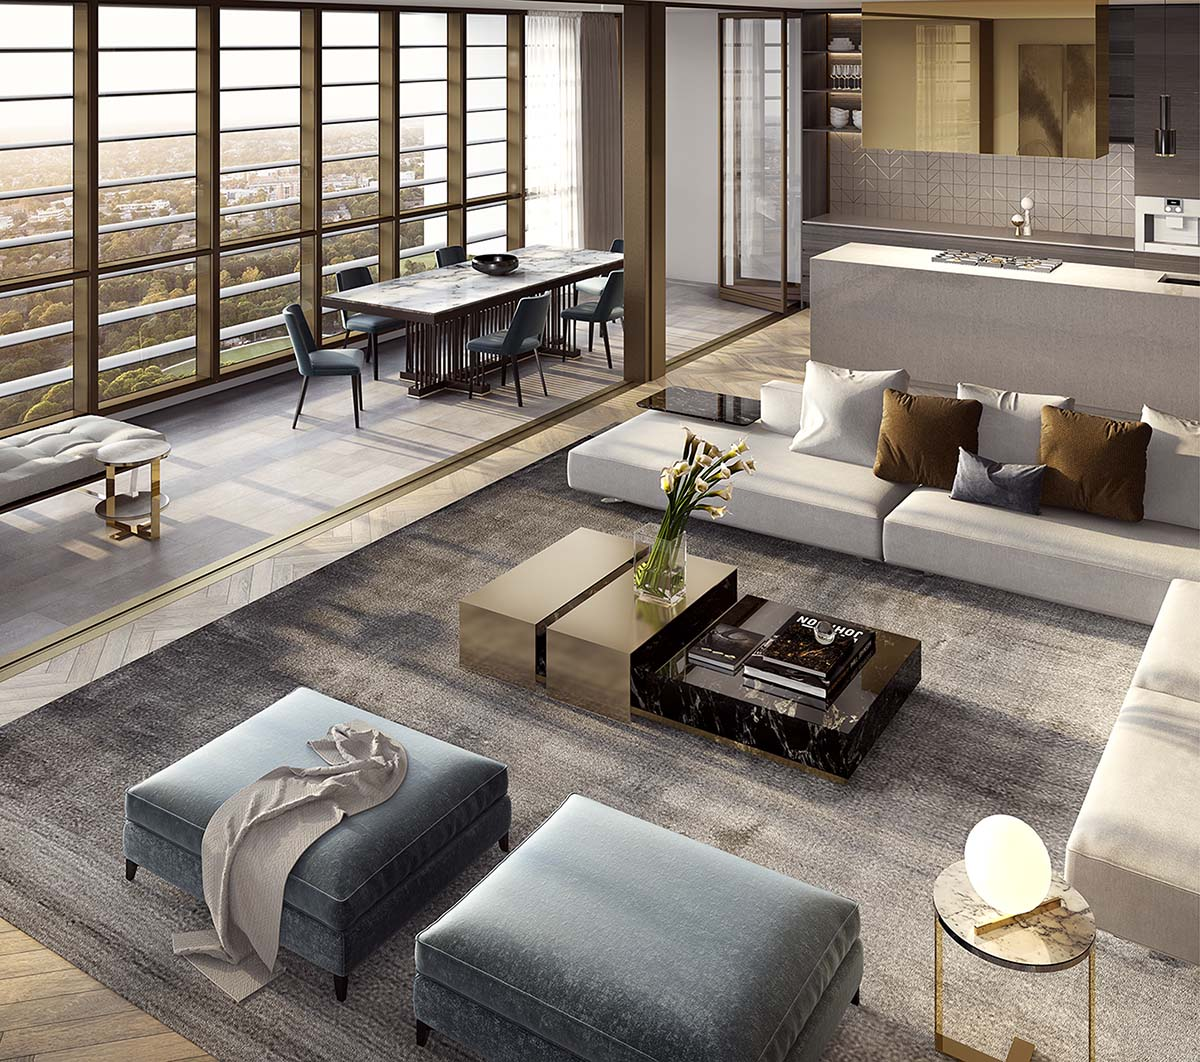 Living room with aerial view showing couches, coffee tables, dining area and city view